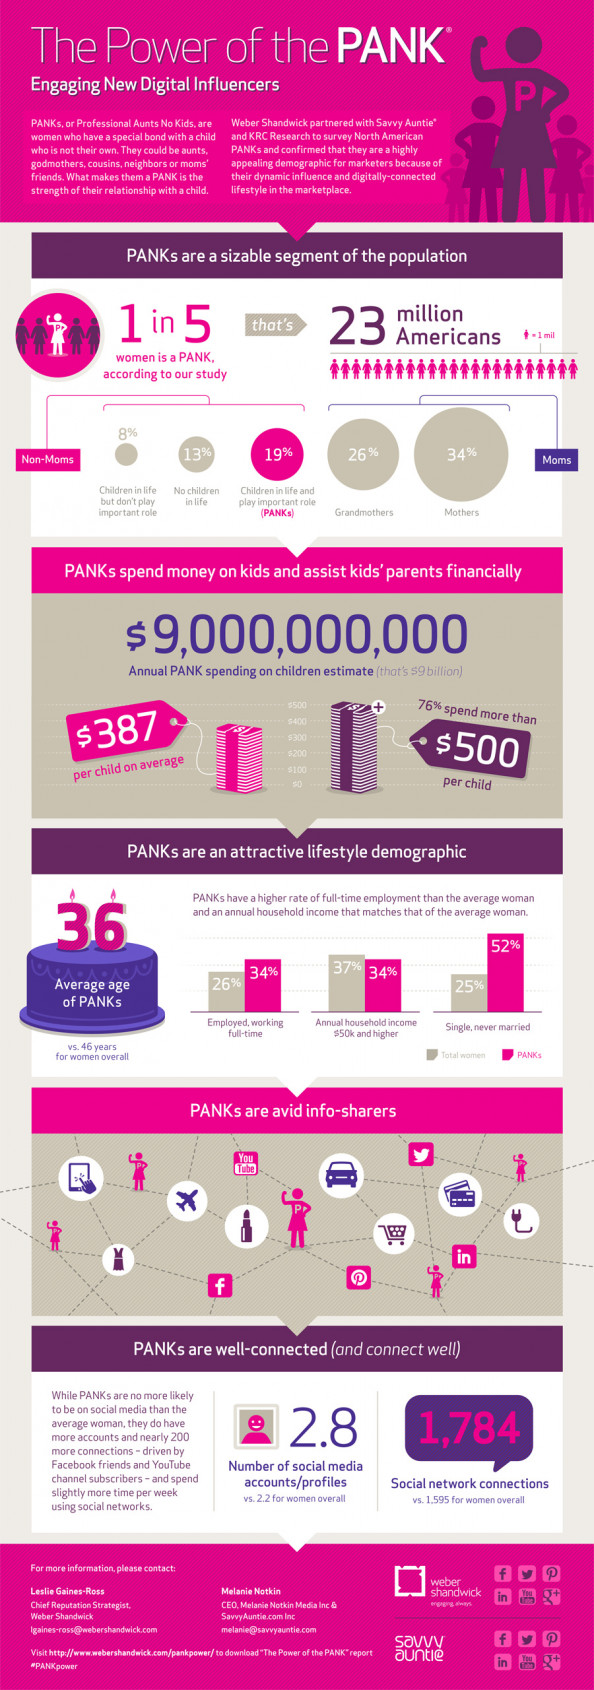 Digital Women Influencers Study: The Power of the PANK  Infographic